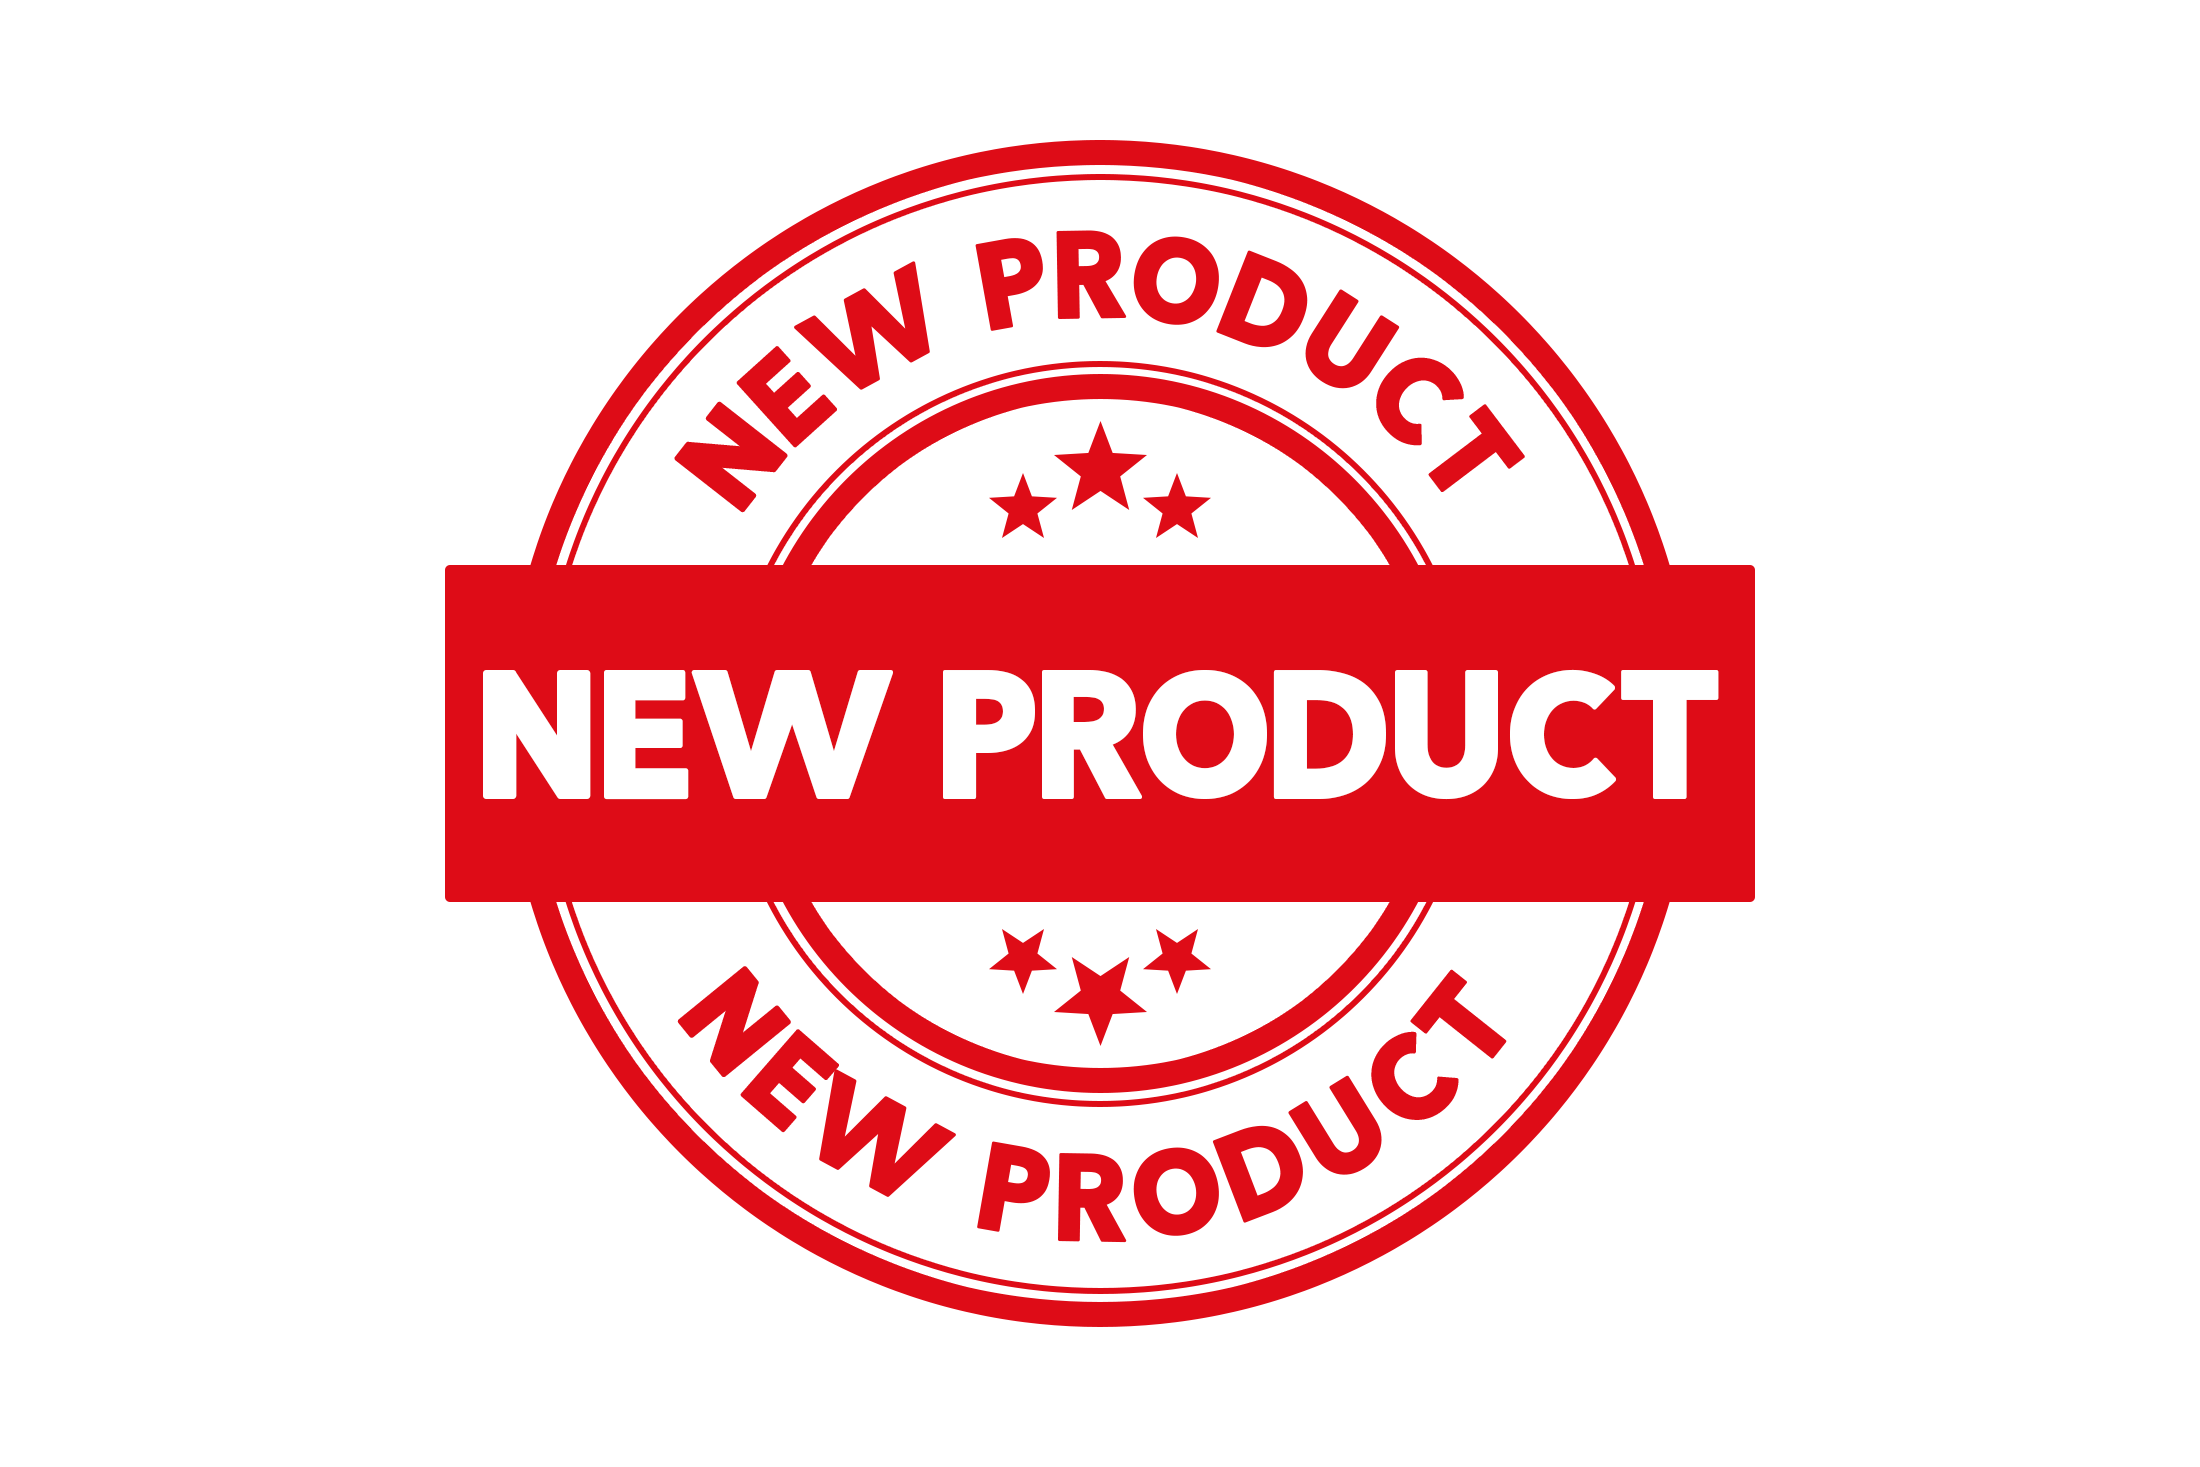 Round new product stamp PSD